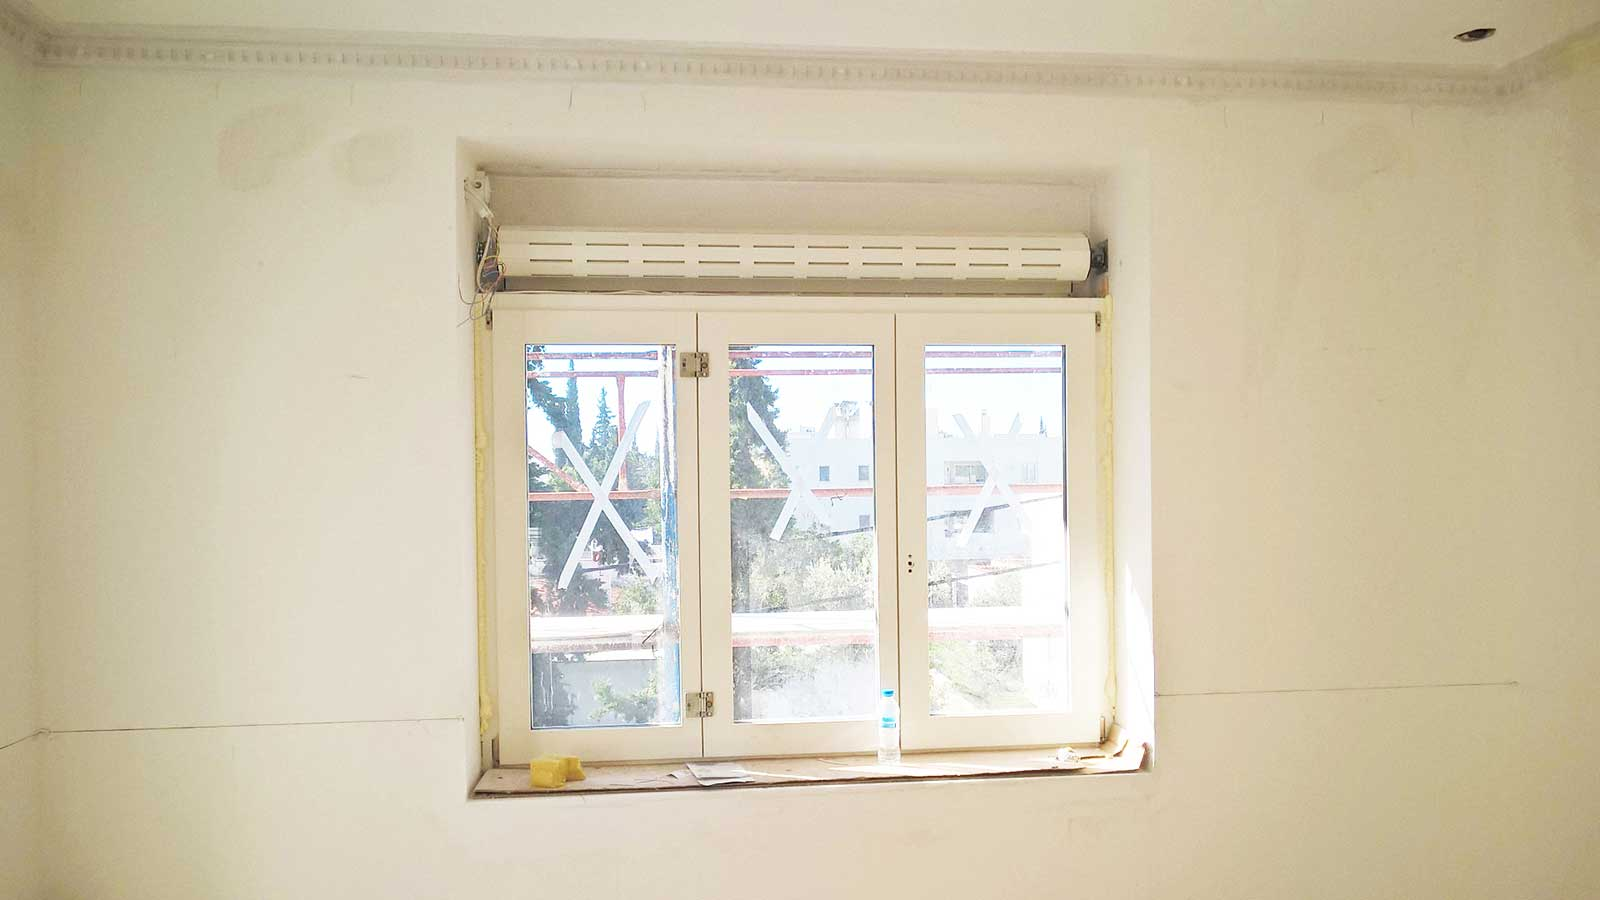 Three section window with roll